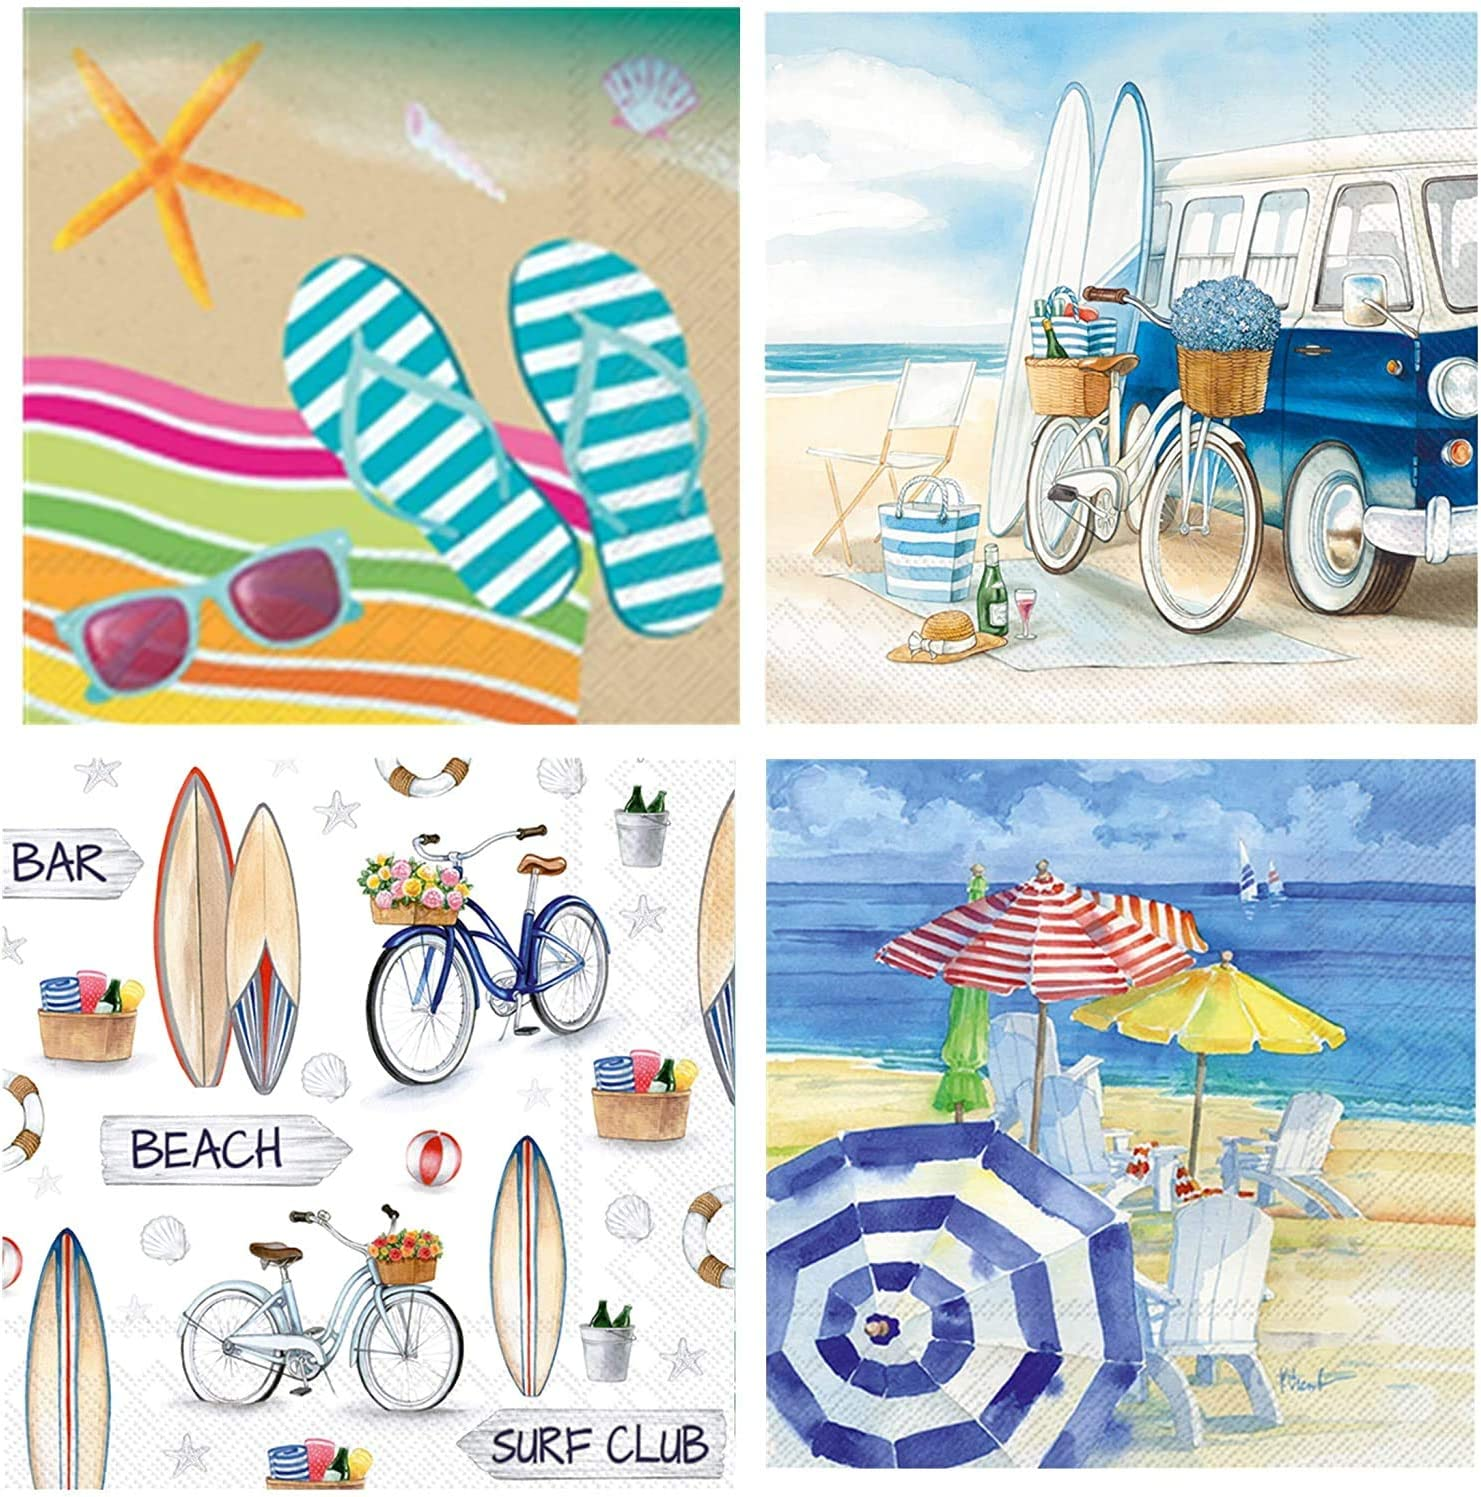 Boston International 20 Count 3-Ply Paper Cocktail Napkins, set of 4 Beach & Summer Themes